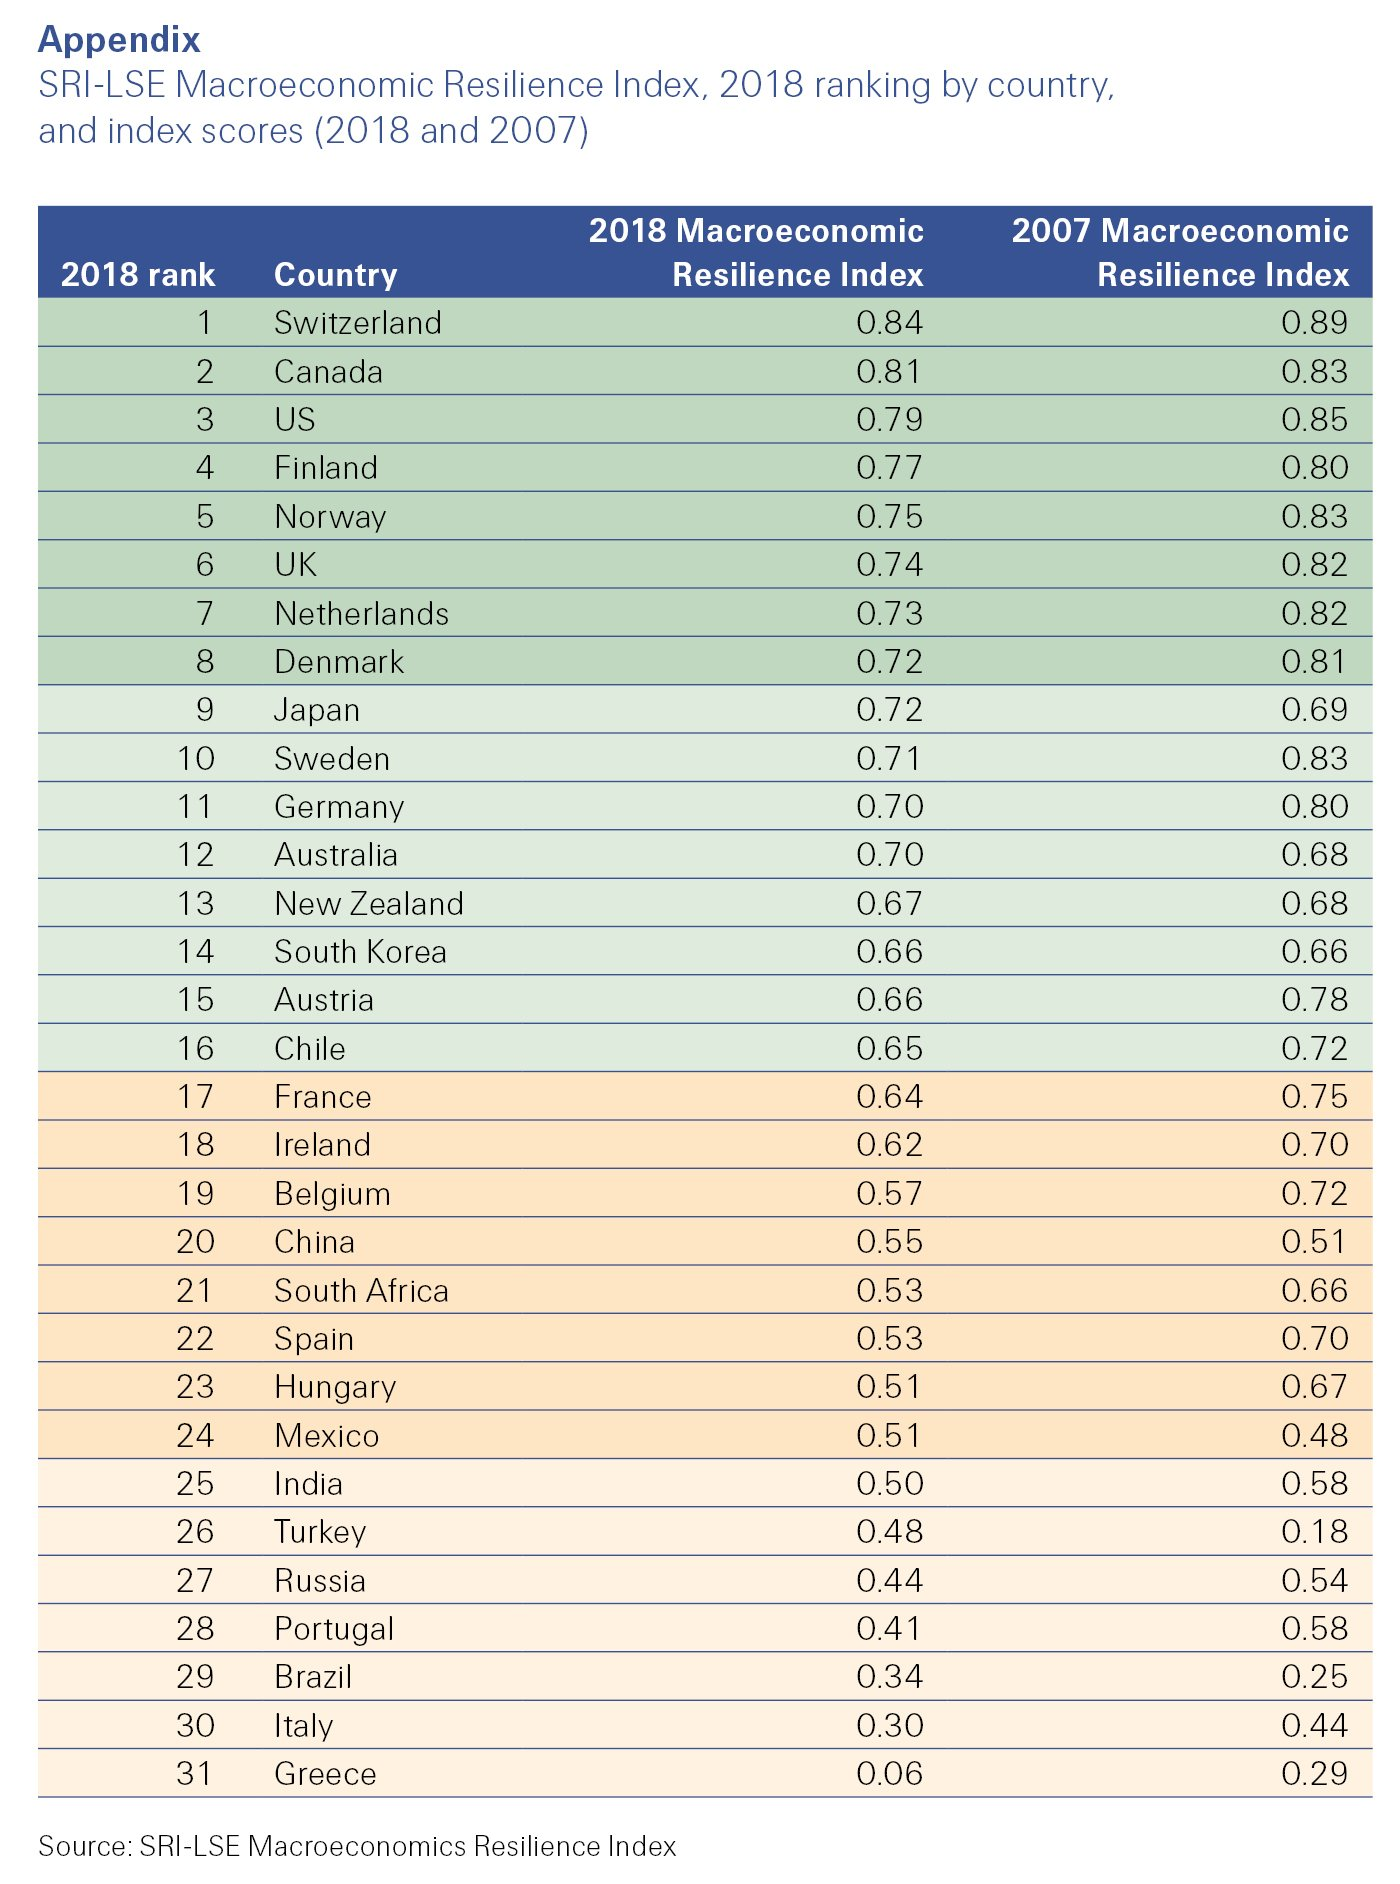 SRI-LSE Macroeconomic Resilience Index, 2018 ranking by country, and index scores (2018 and 2007) sigma 5/2019